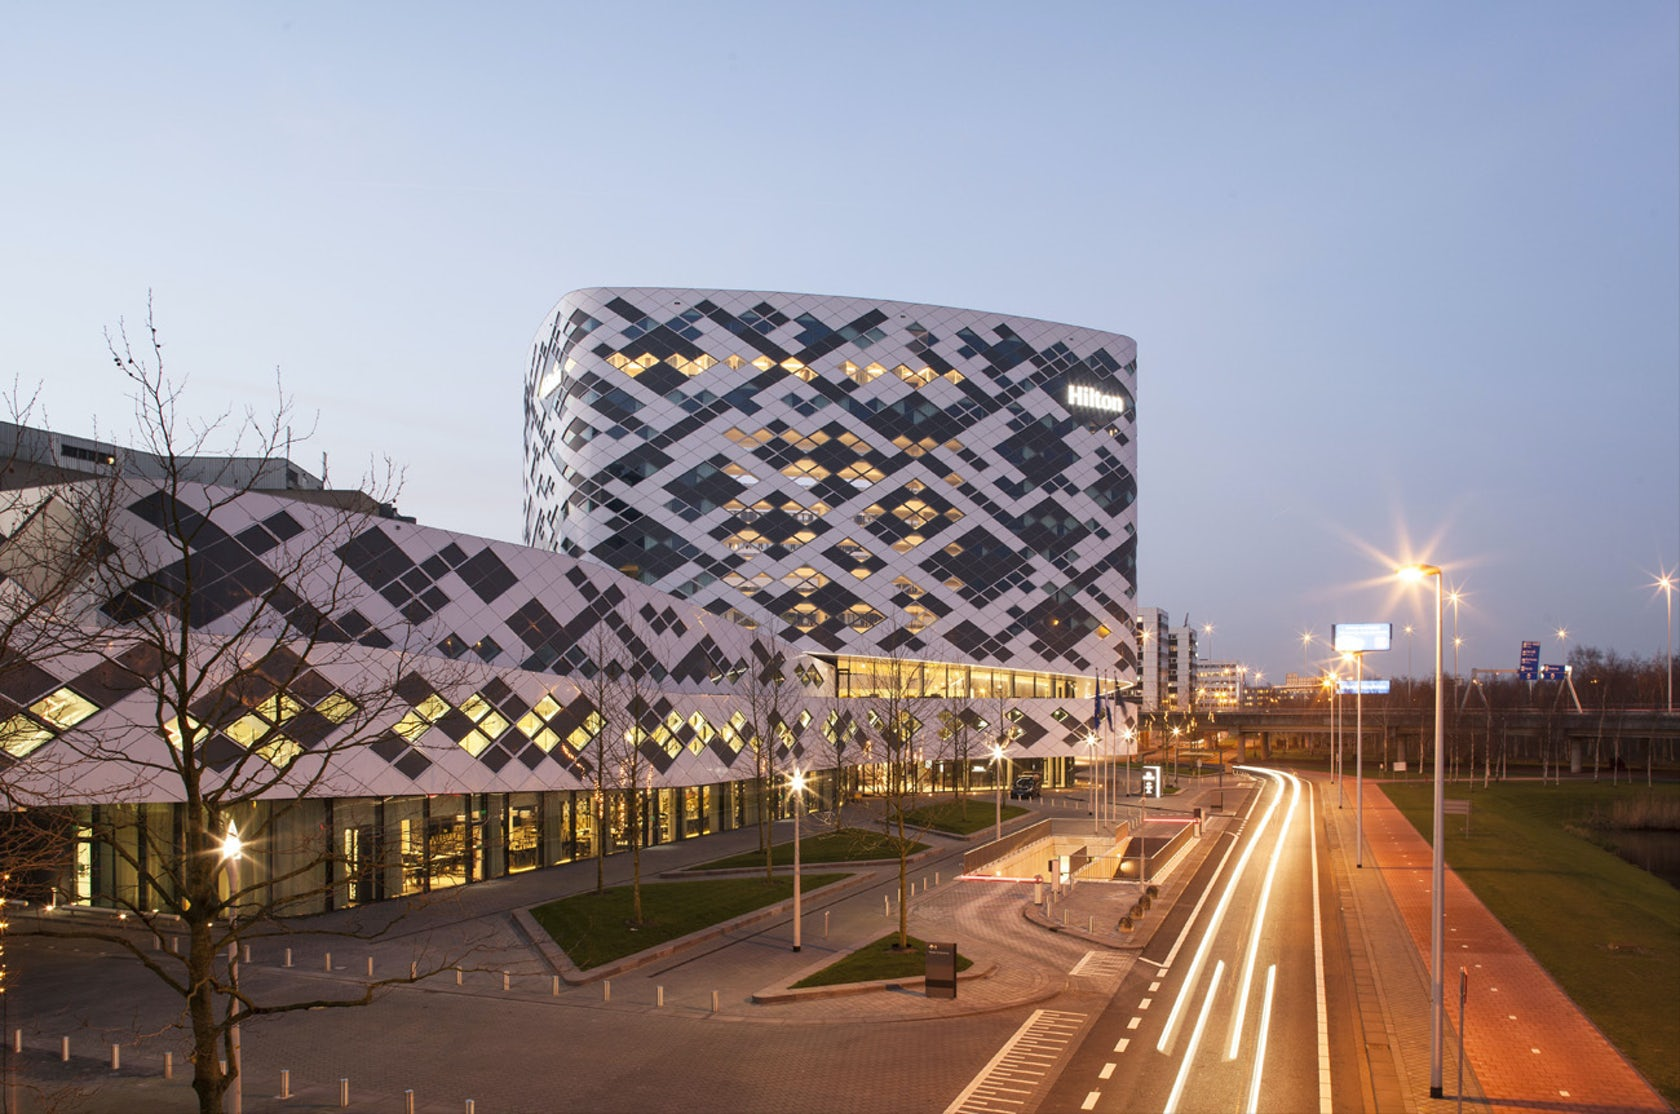 National City Auto Center >> Amsterdam Airport Schiphol Hotel - Architizer